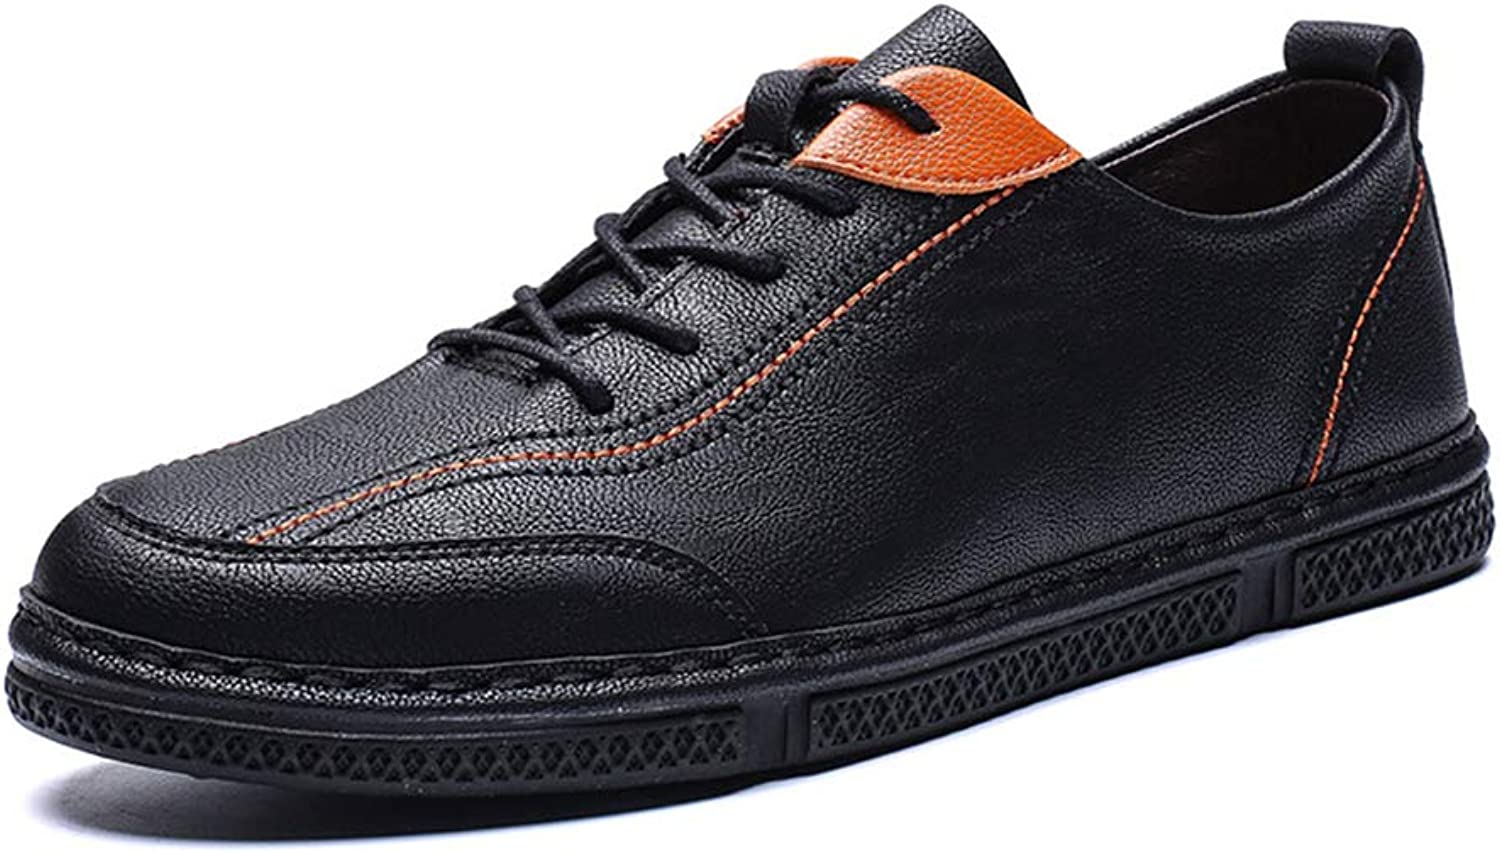 He-yanjing Men's Casual shoes, Microfiber Leather Casual shoes 2019 Spring Korean Version Young Men's shoes British Style Fashion shoes Popular Small shoes,a,43